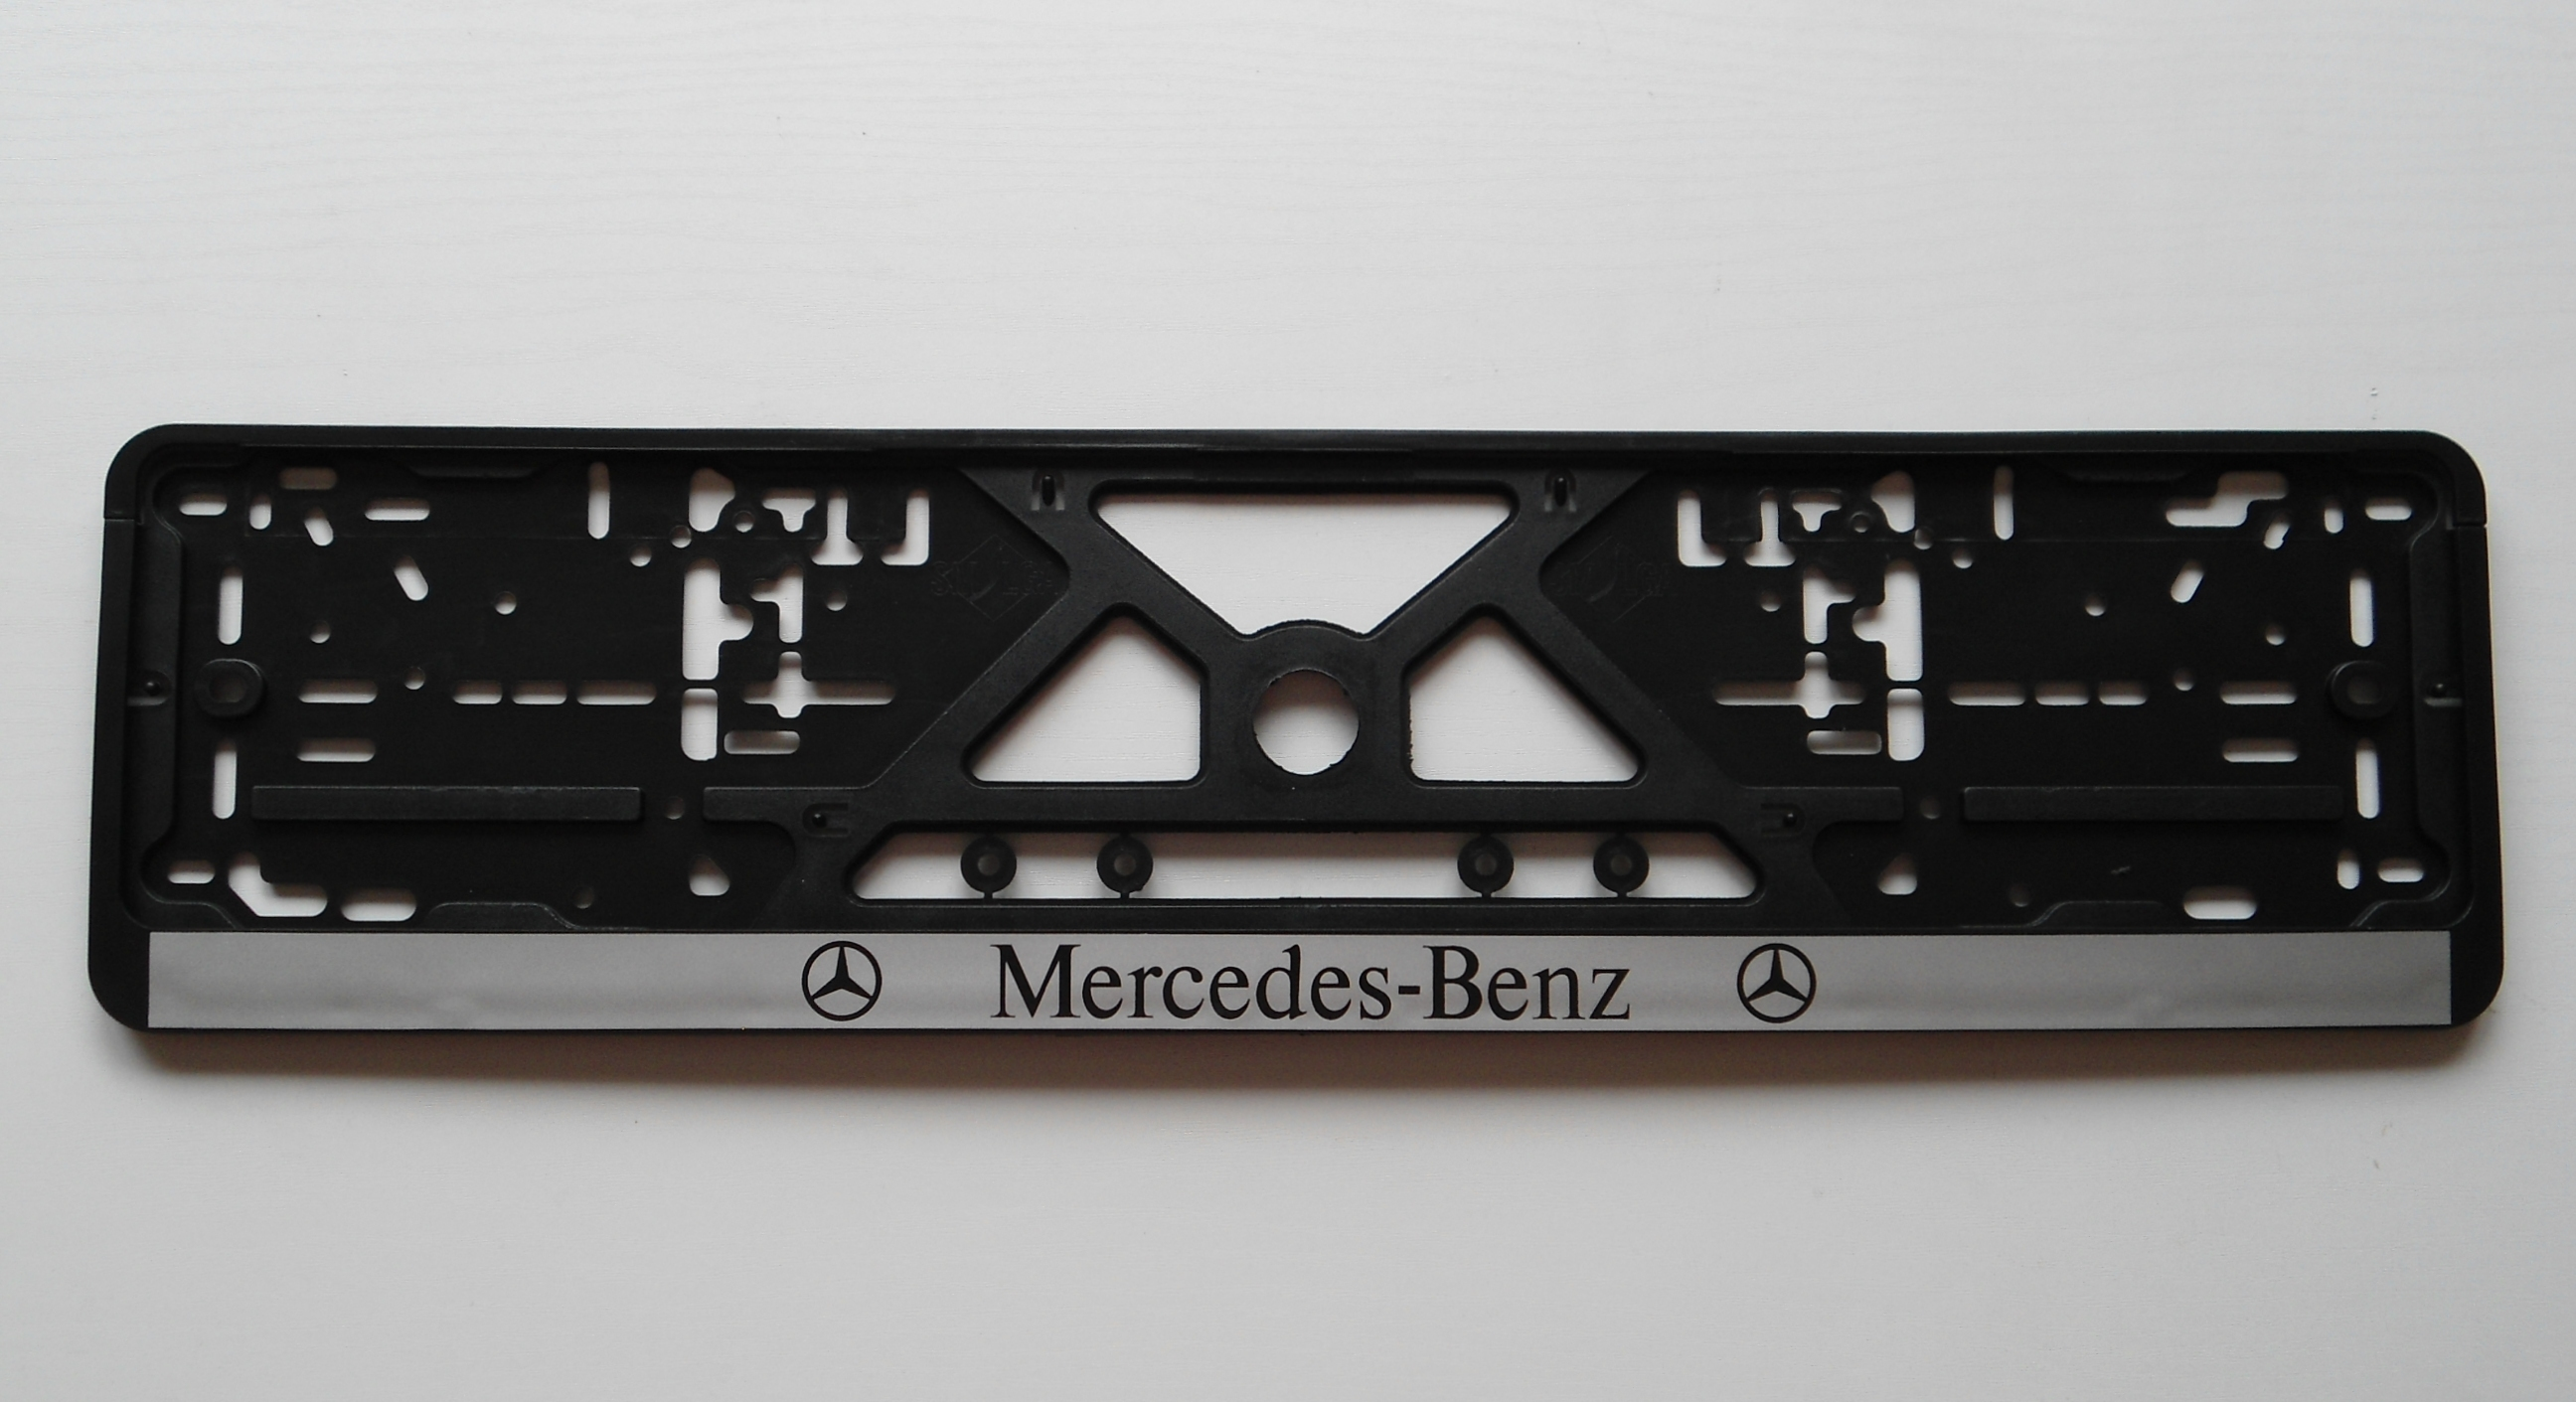 Please help me with license plate placement for Mercedes benz support number